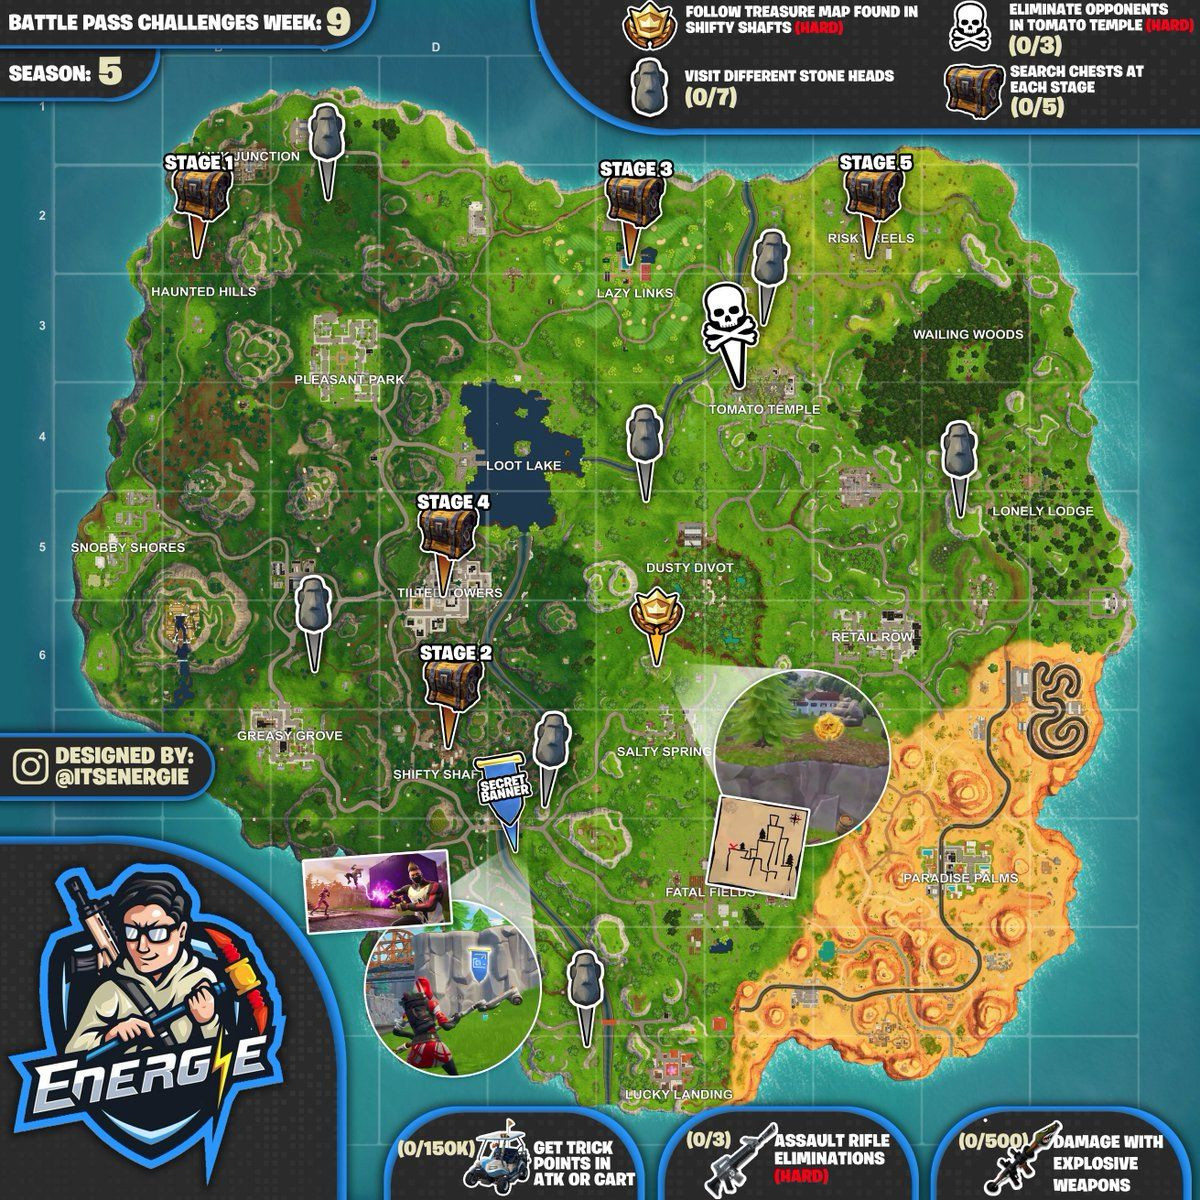 Printable Fortnite Map Season 4 Elegant Cheat Sheet Map For Fortnite Season 5 Week 9 Challenges